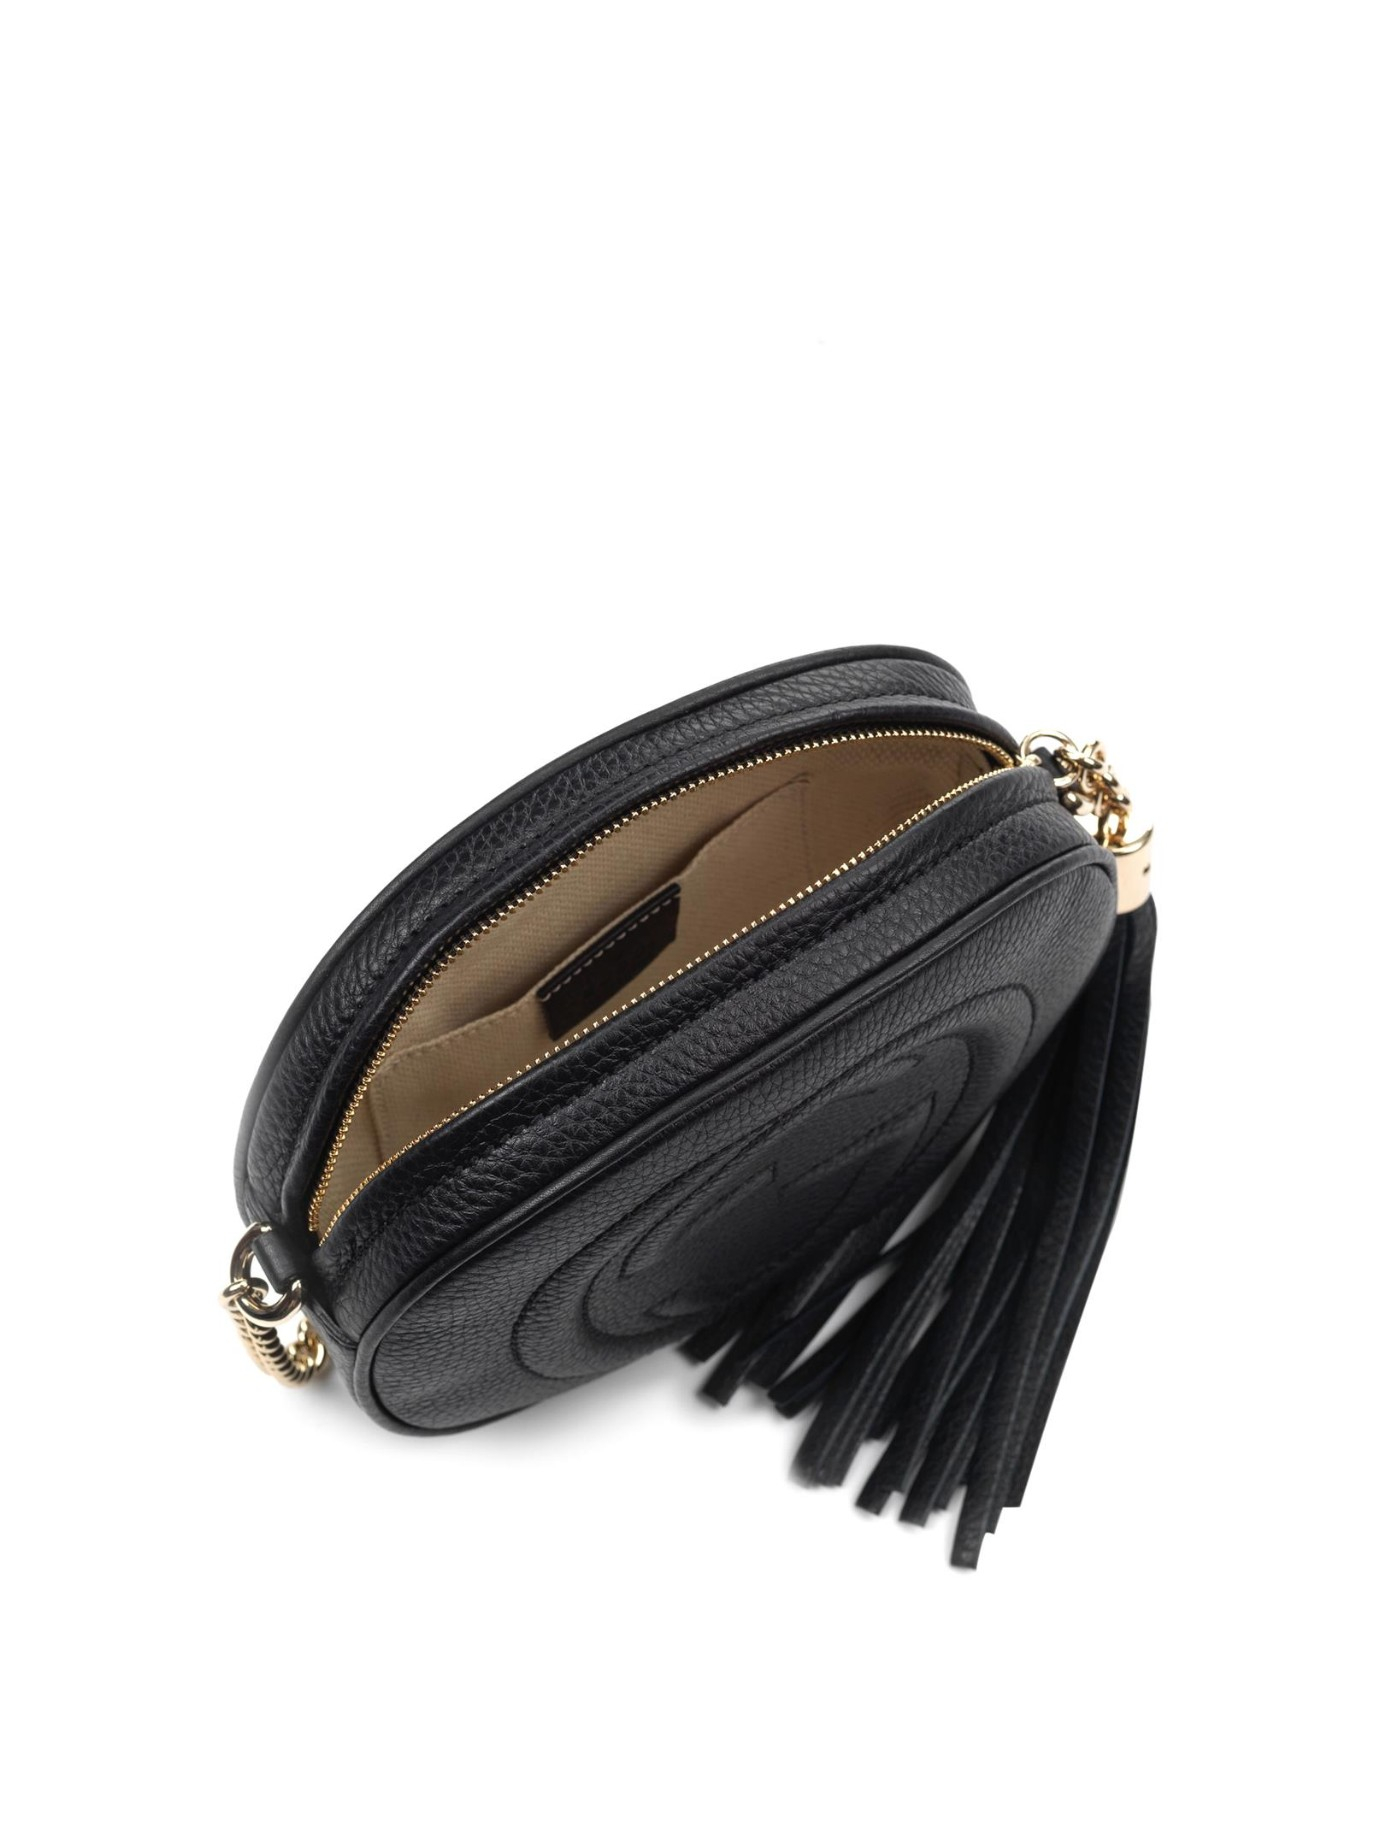 c3a608f61ca Gallery. Previously sold at  MATCHESFASHION.COM · Women s Gucci Soho Bag